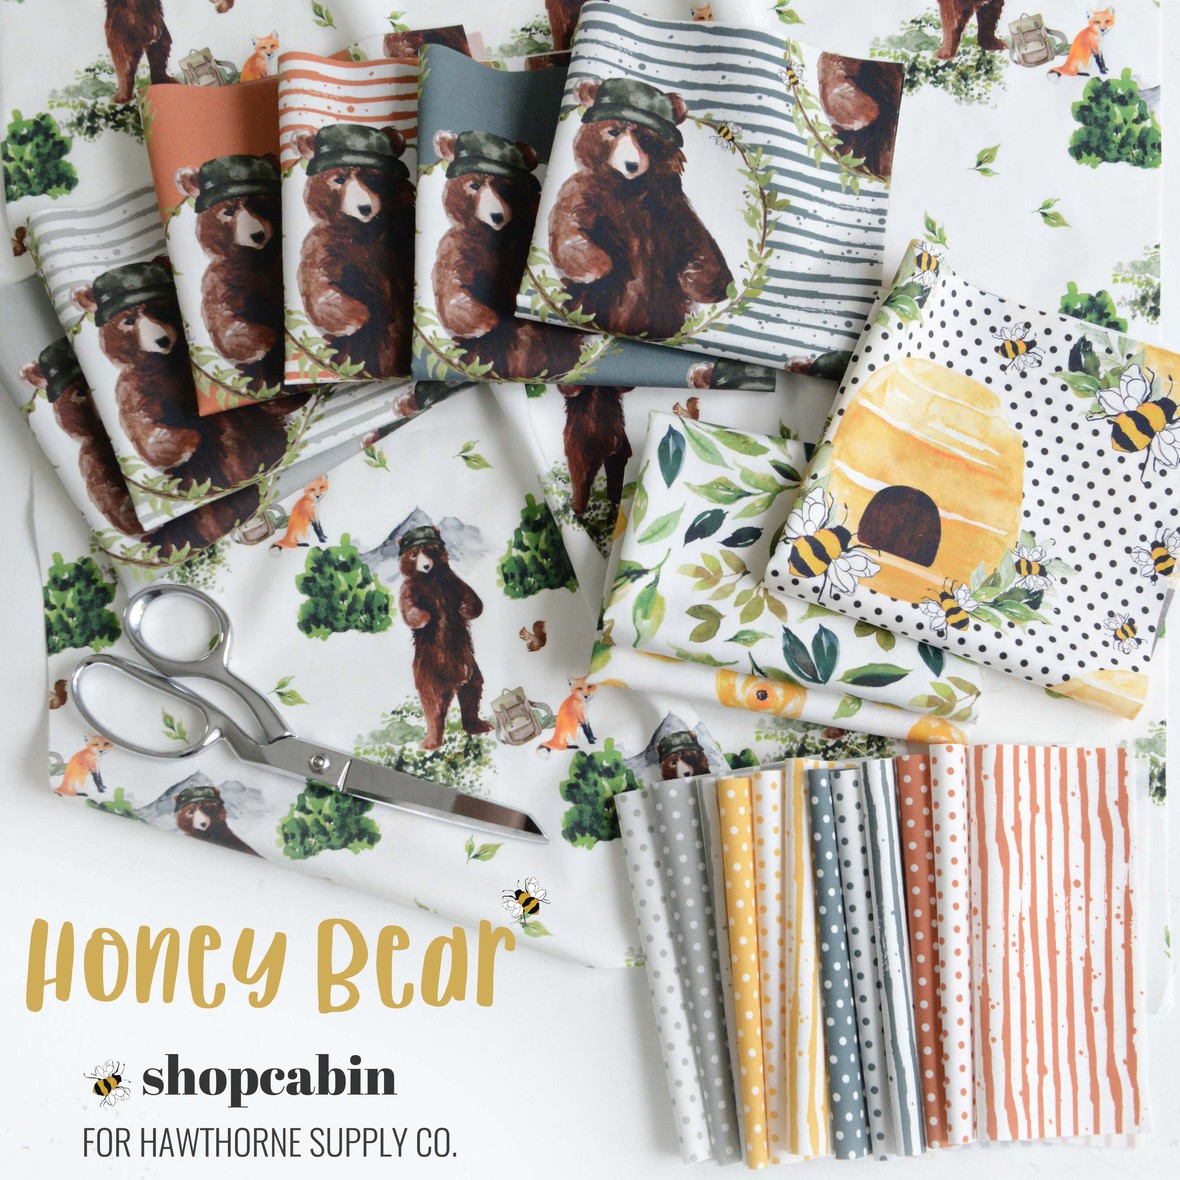 Honey Bear Boy by Shopcabin at Hawthorne Supply Co.